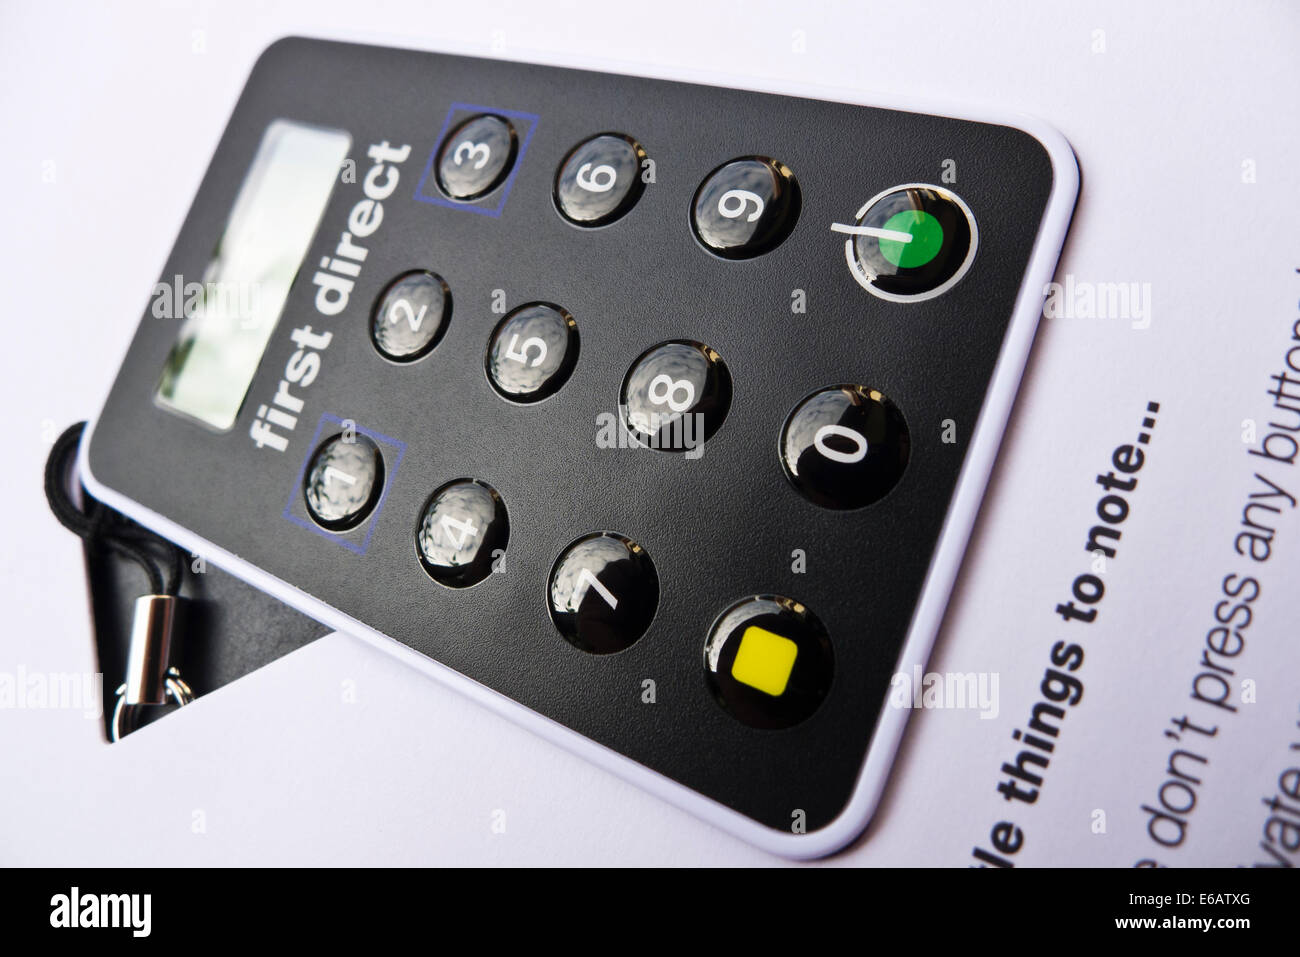 First Direct secure key for added security of online banking. - Stock Image